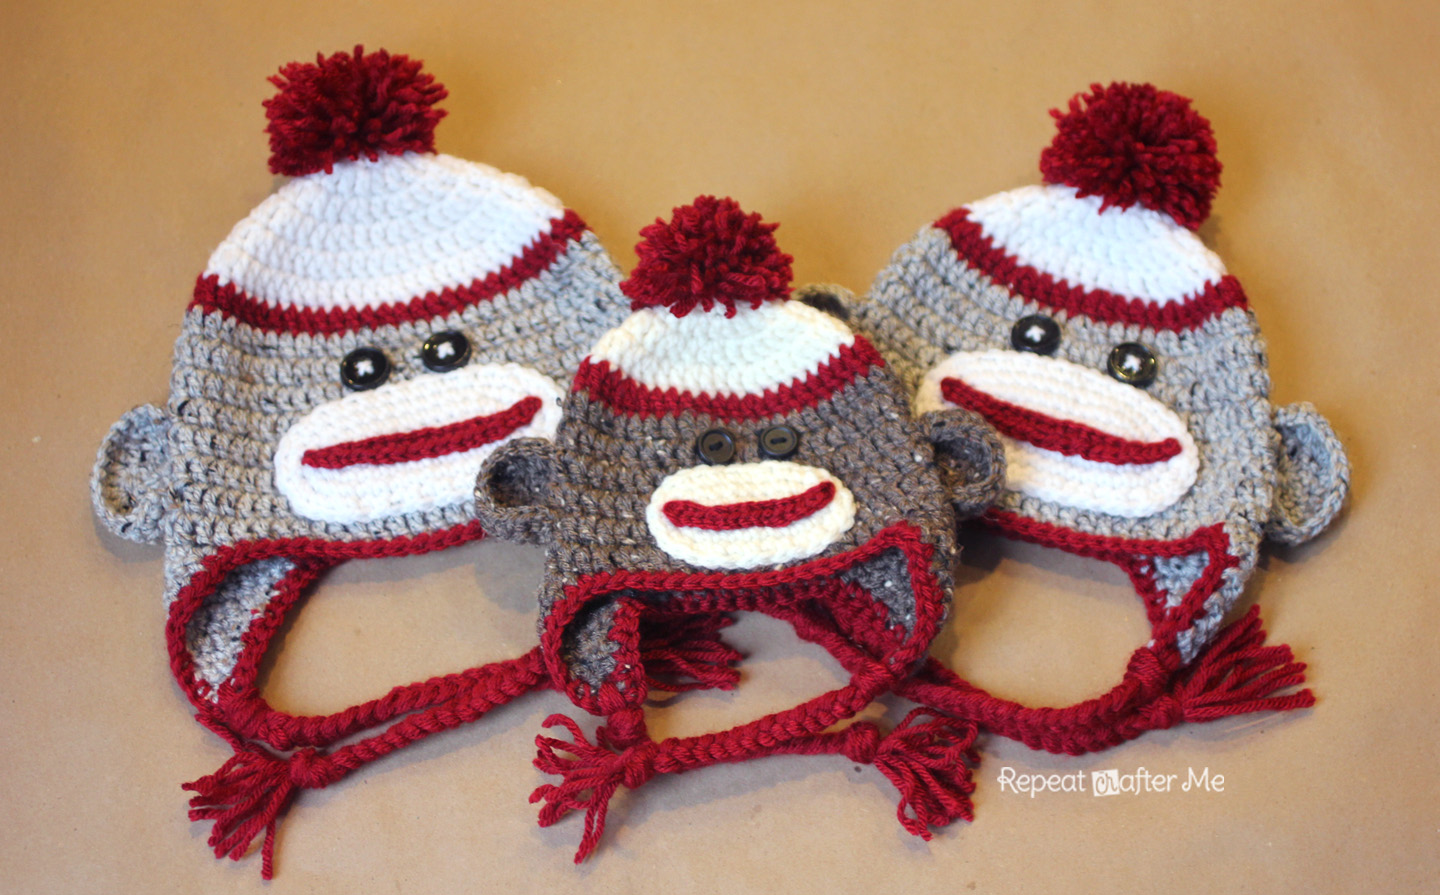 coupon how to make a crochet baby hat with ears 01 2e93f b697b c49a74402857